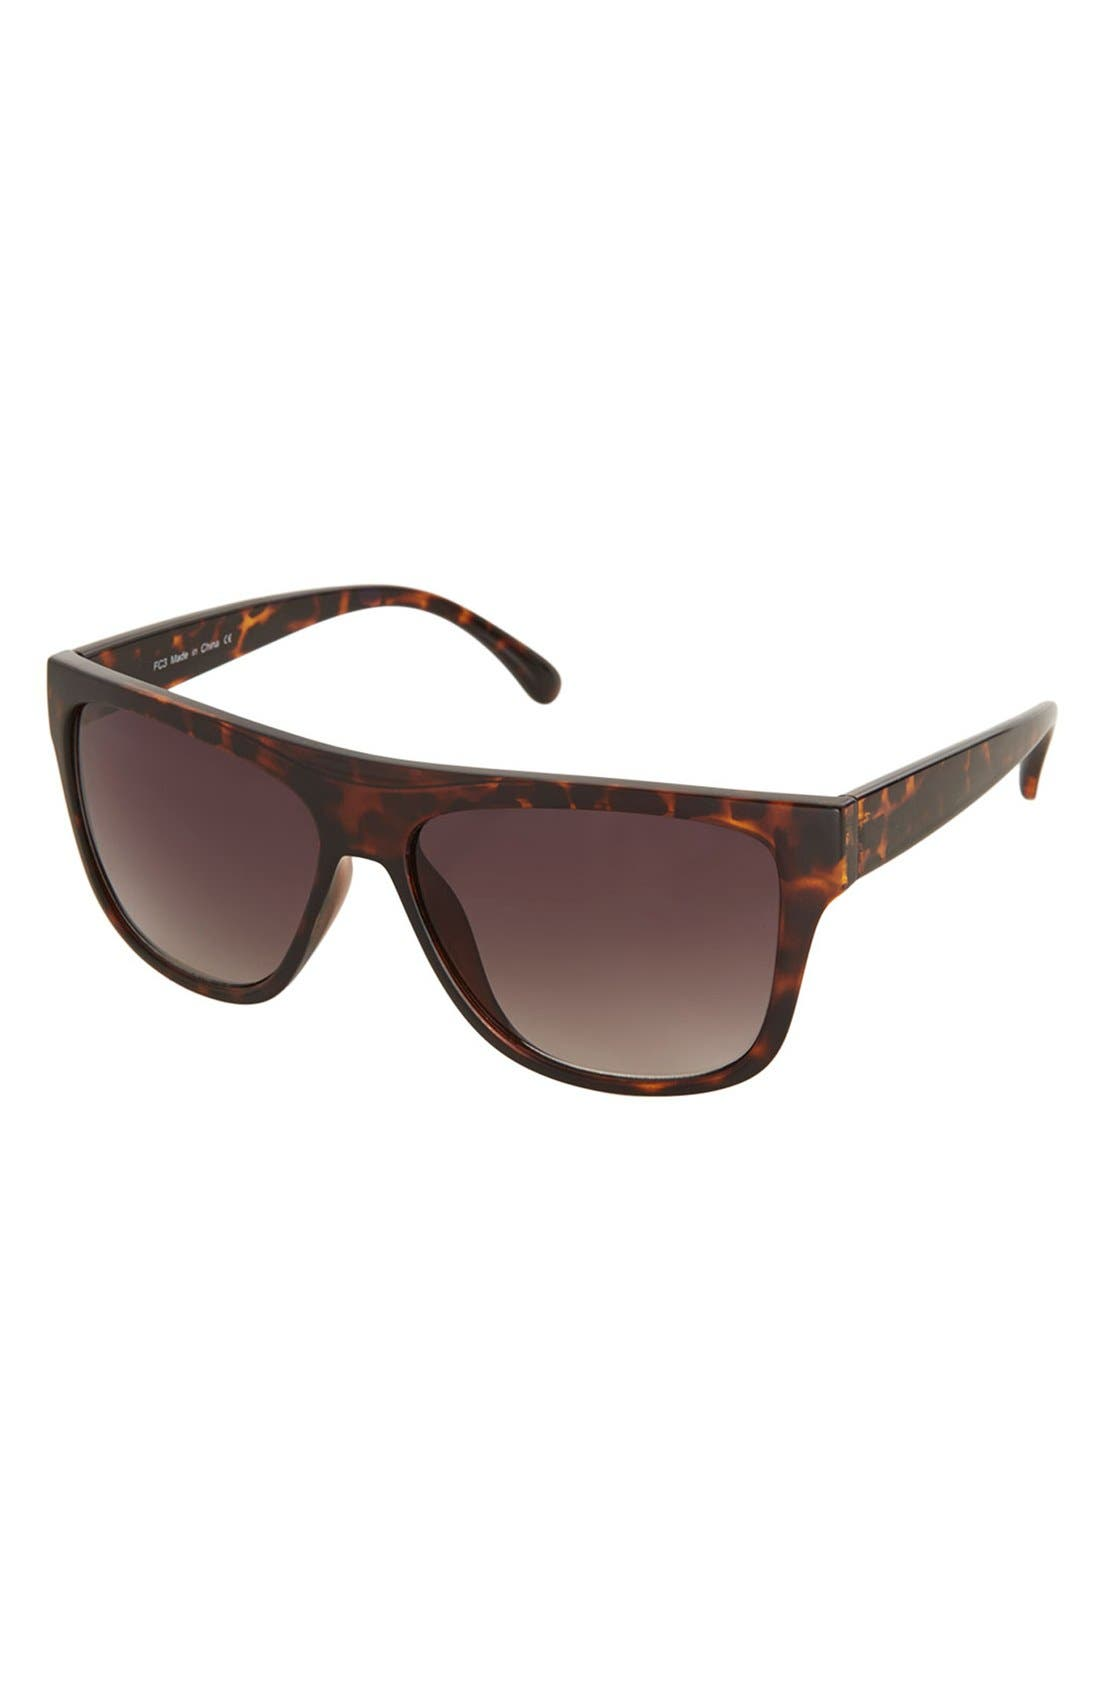 Main Image - Topshop 'The Collection Starring Kate Bosworth' Sunglasses